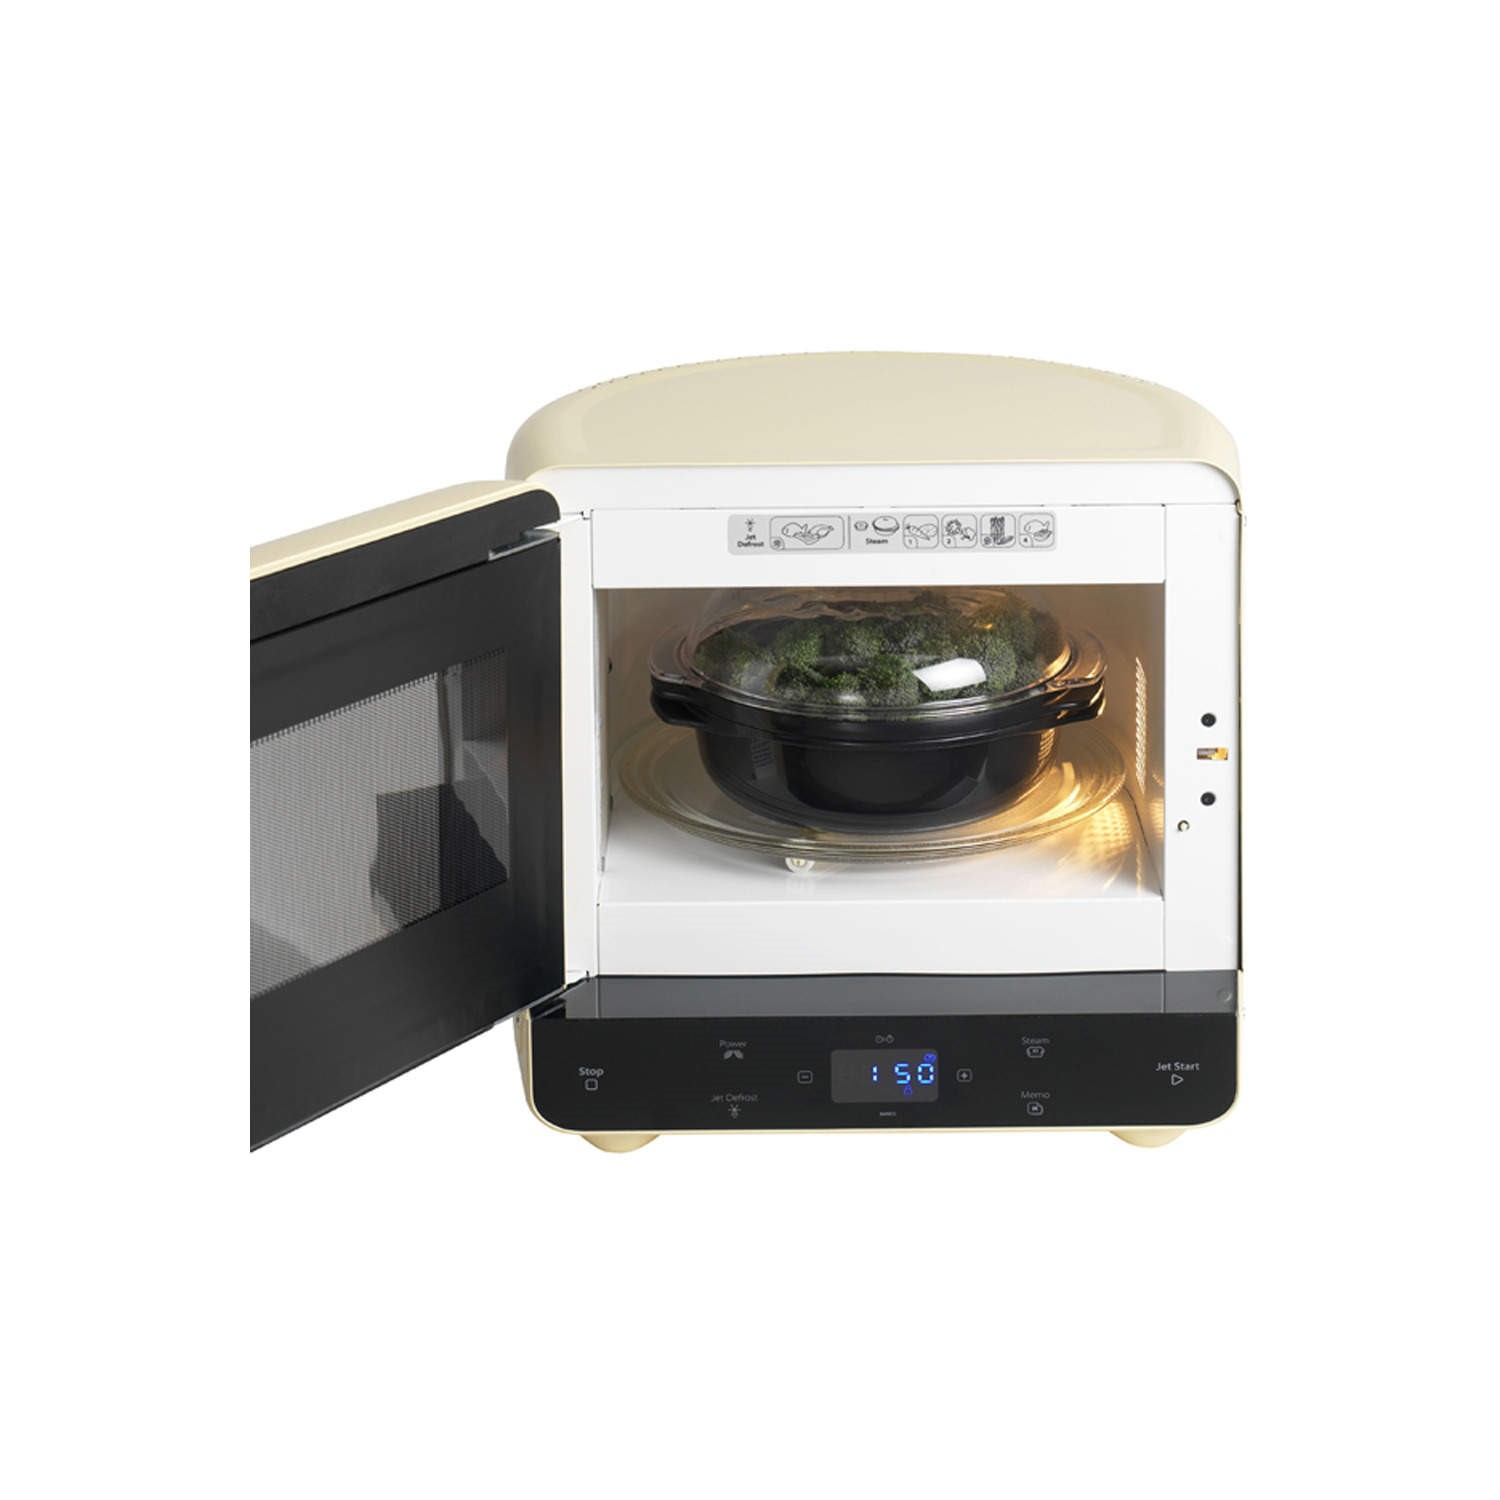 whirlpool max35crg max 35 microwave with steam function cream